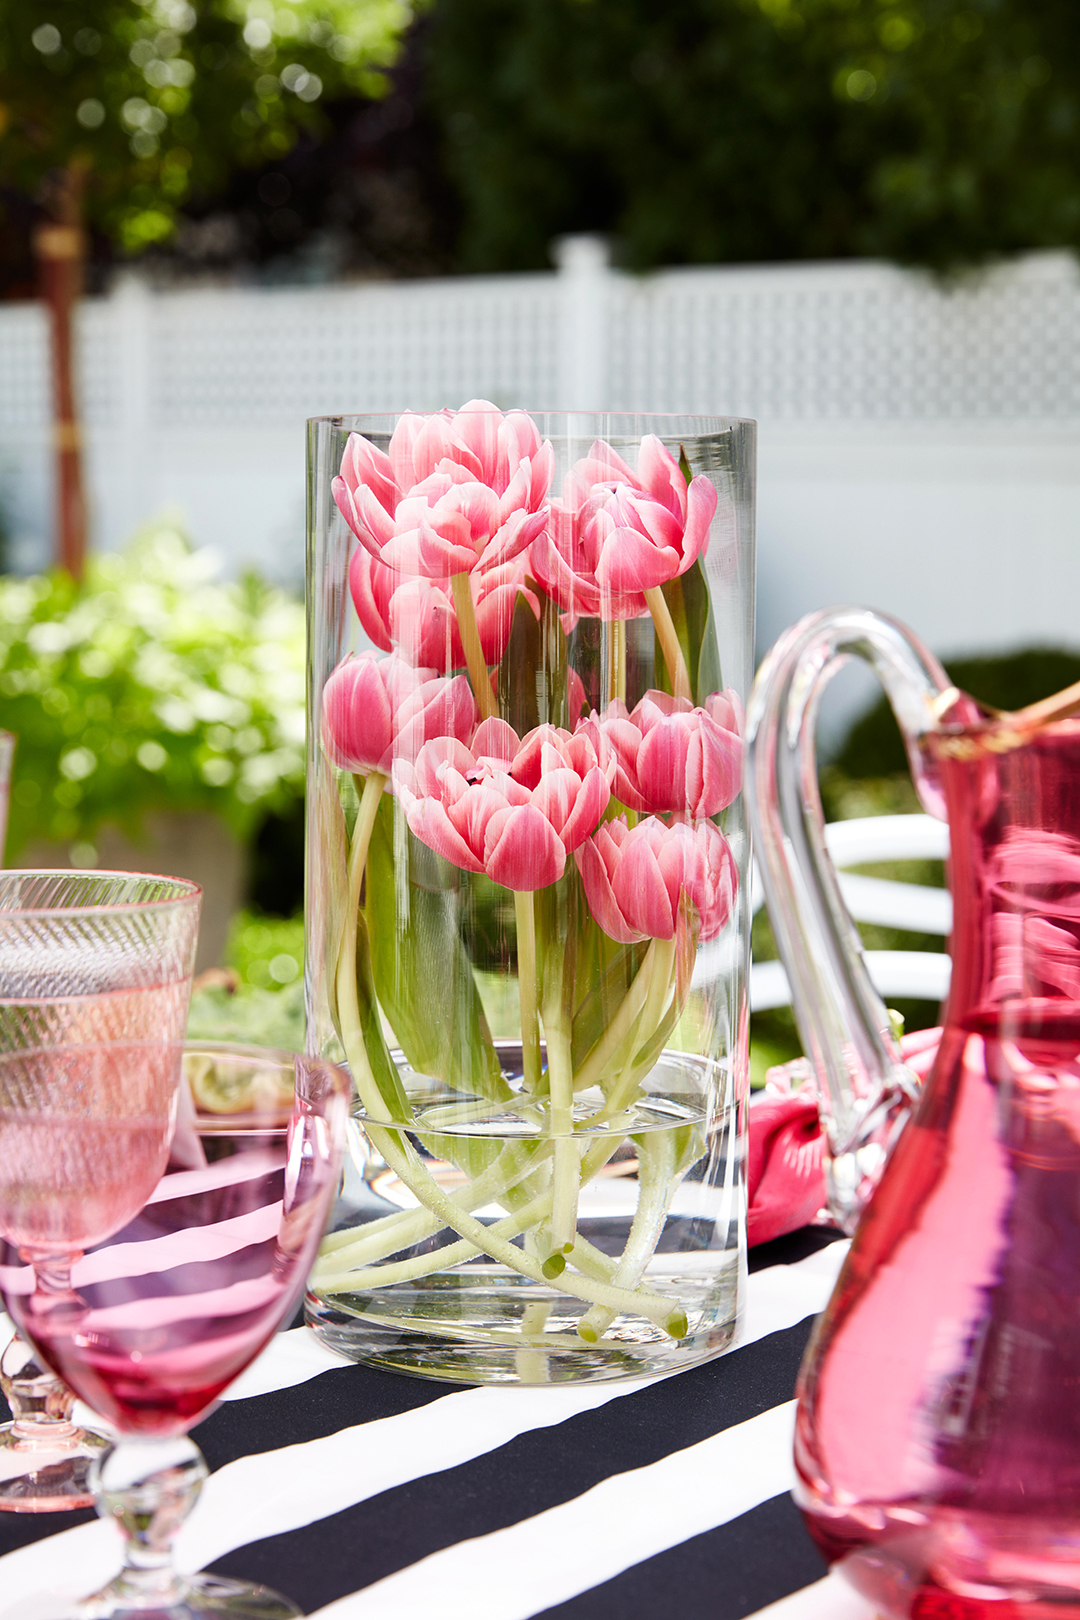 tulips in glass vase on striped table